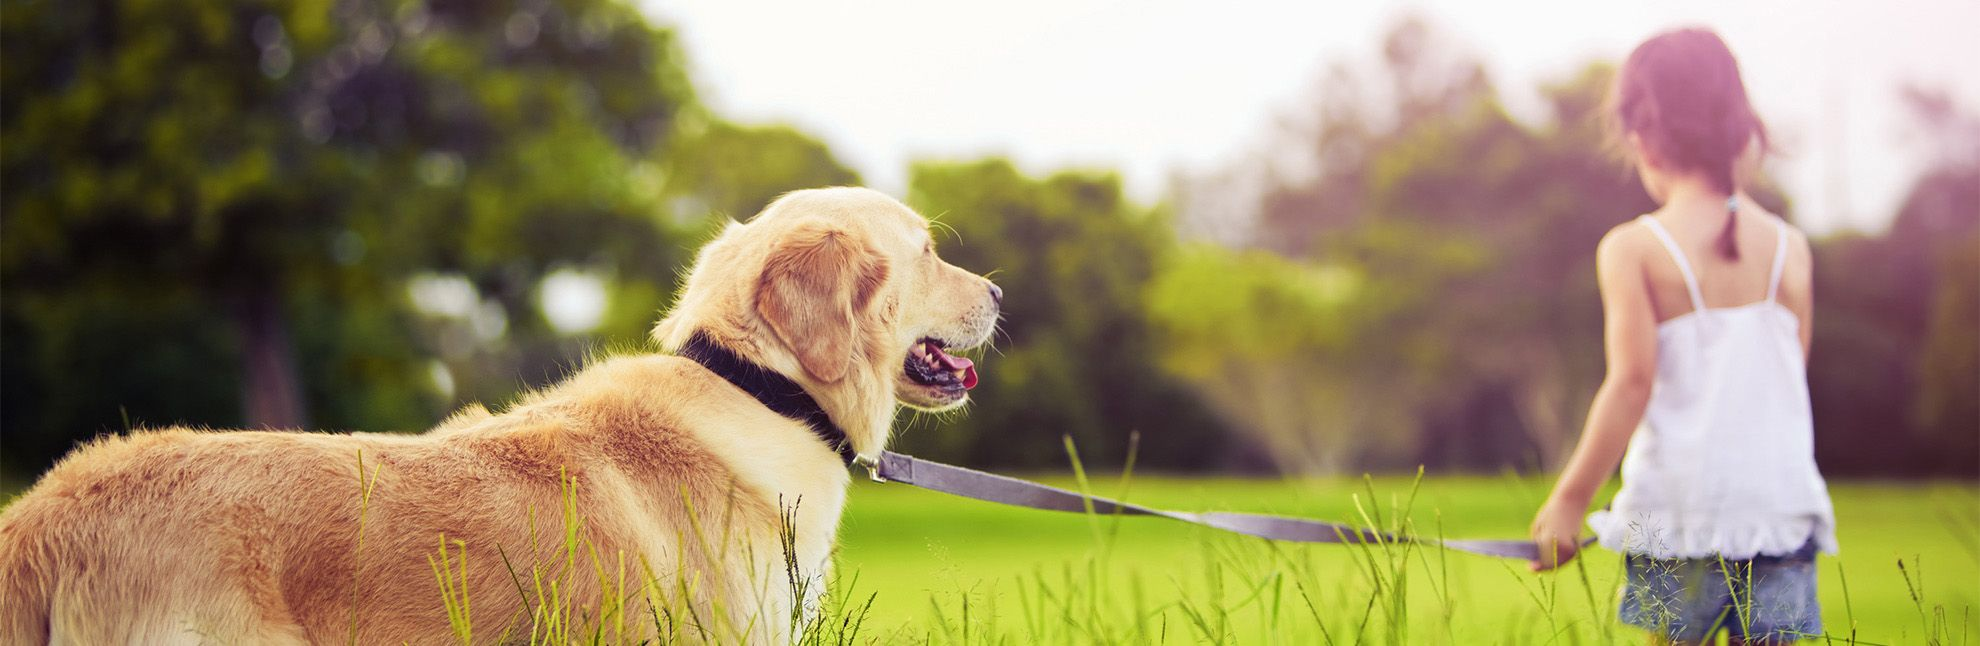 Canine Calorie Calculator (With images) Calorie